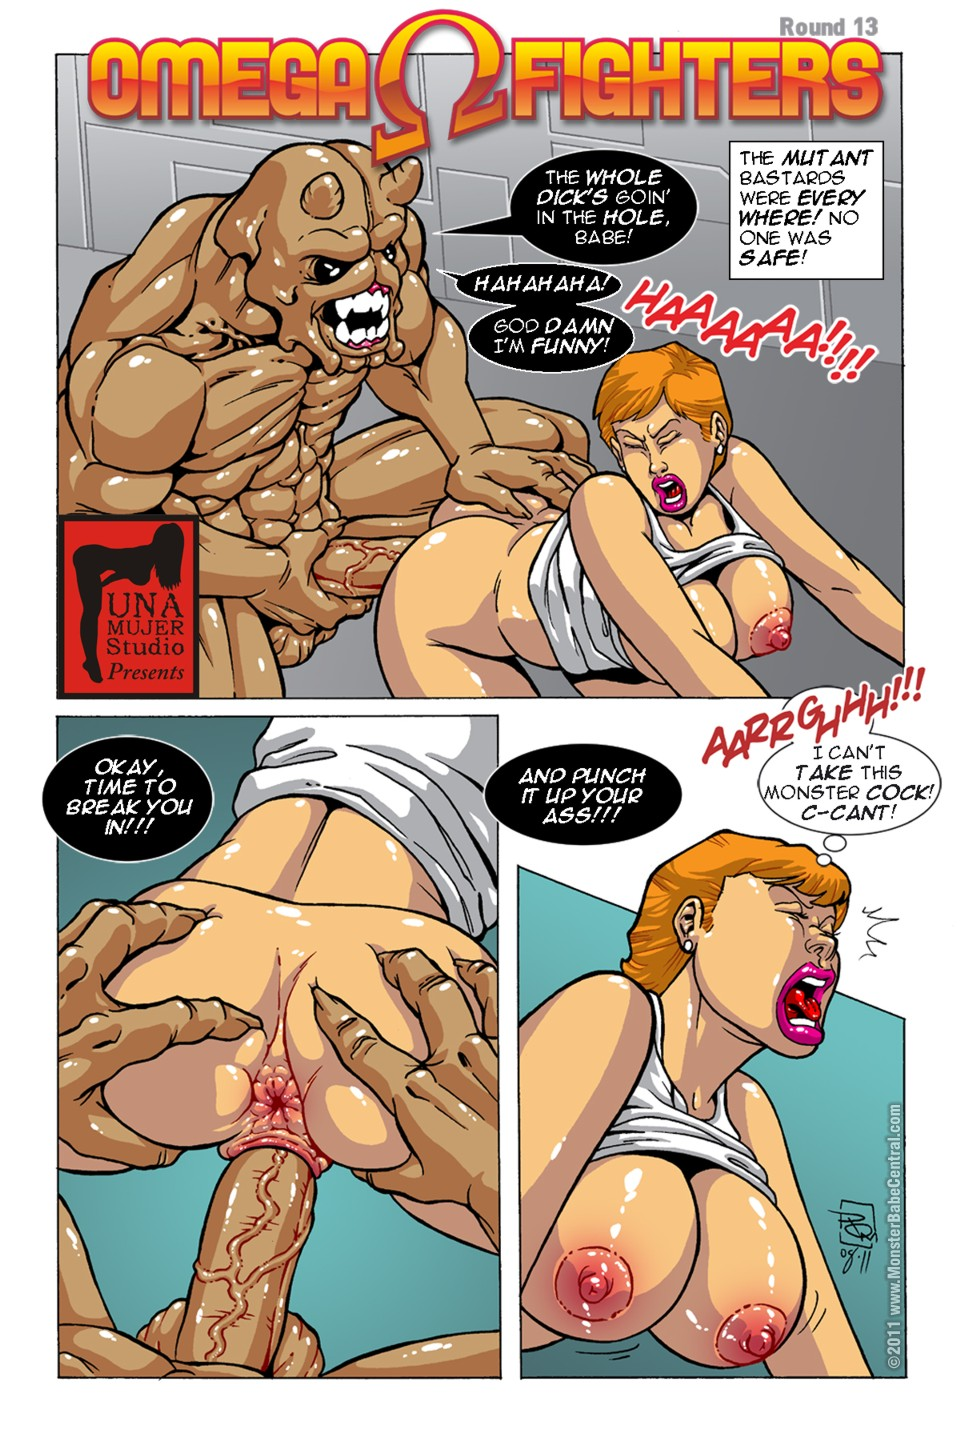 Omega Fighters 13-14 porn comics 8 muses